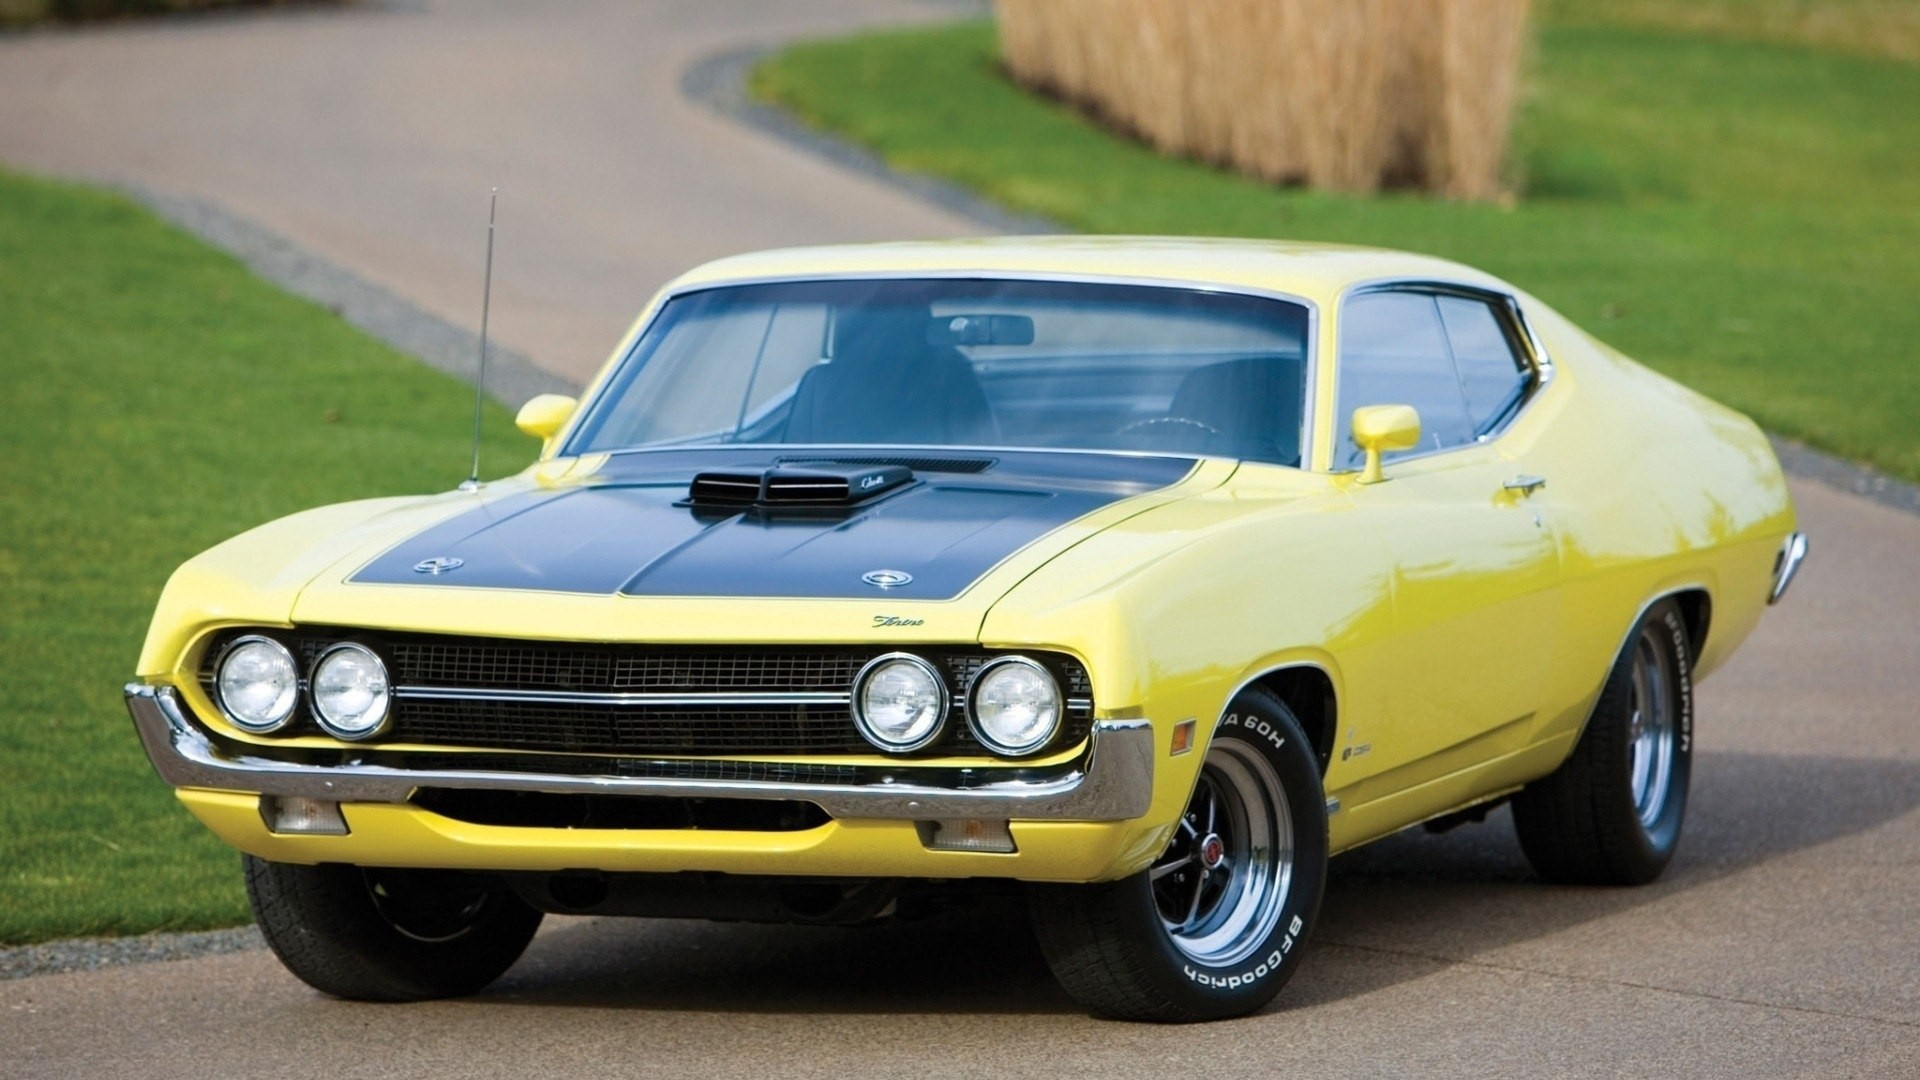 Cars-ford-chevrolet-dodge-muscle-car-1920x1080-ford-chevrolet-dodge-muscle-car-via-www-allwa-wallpaper-wp3603932